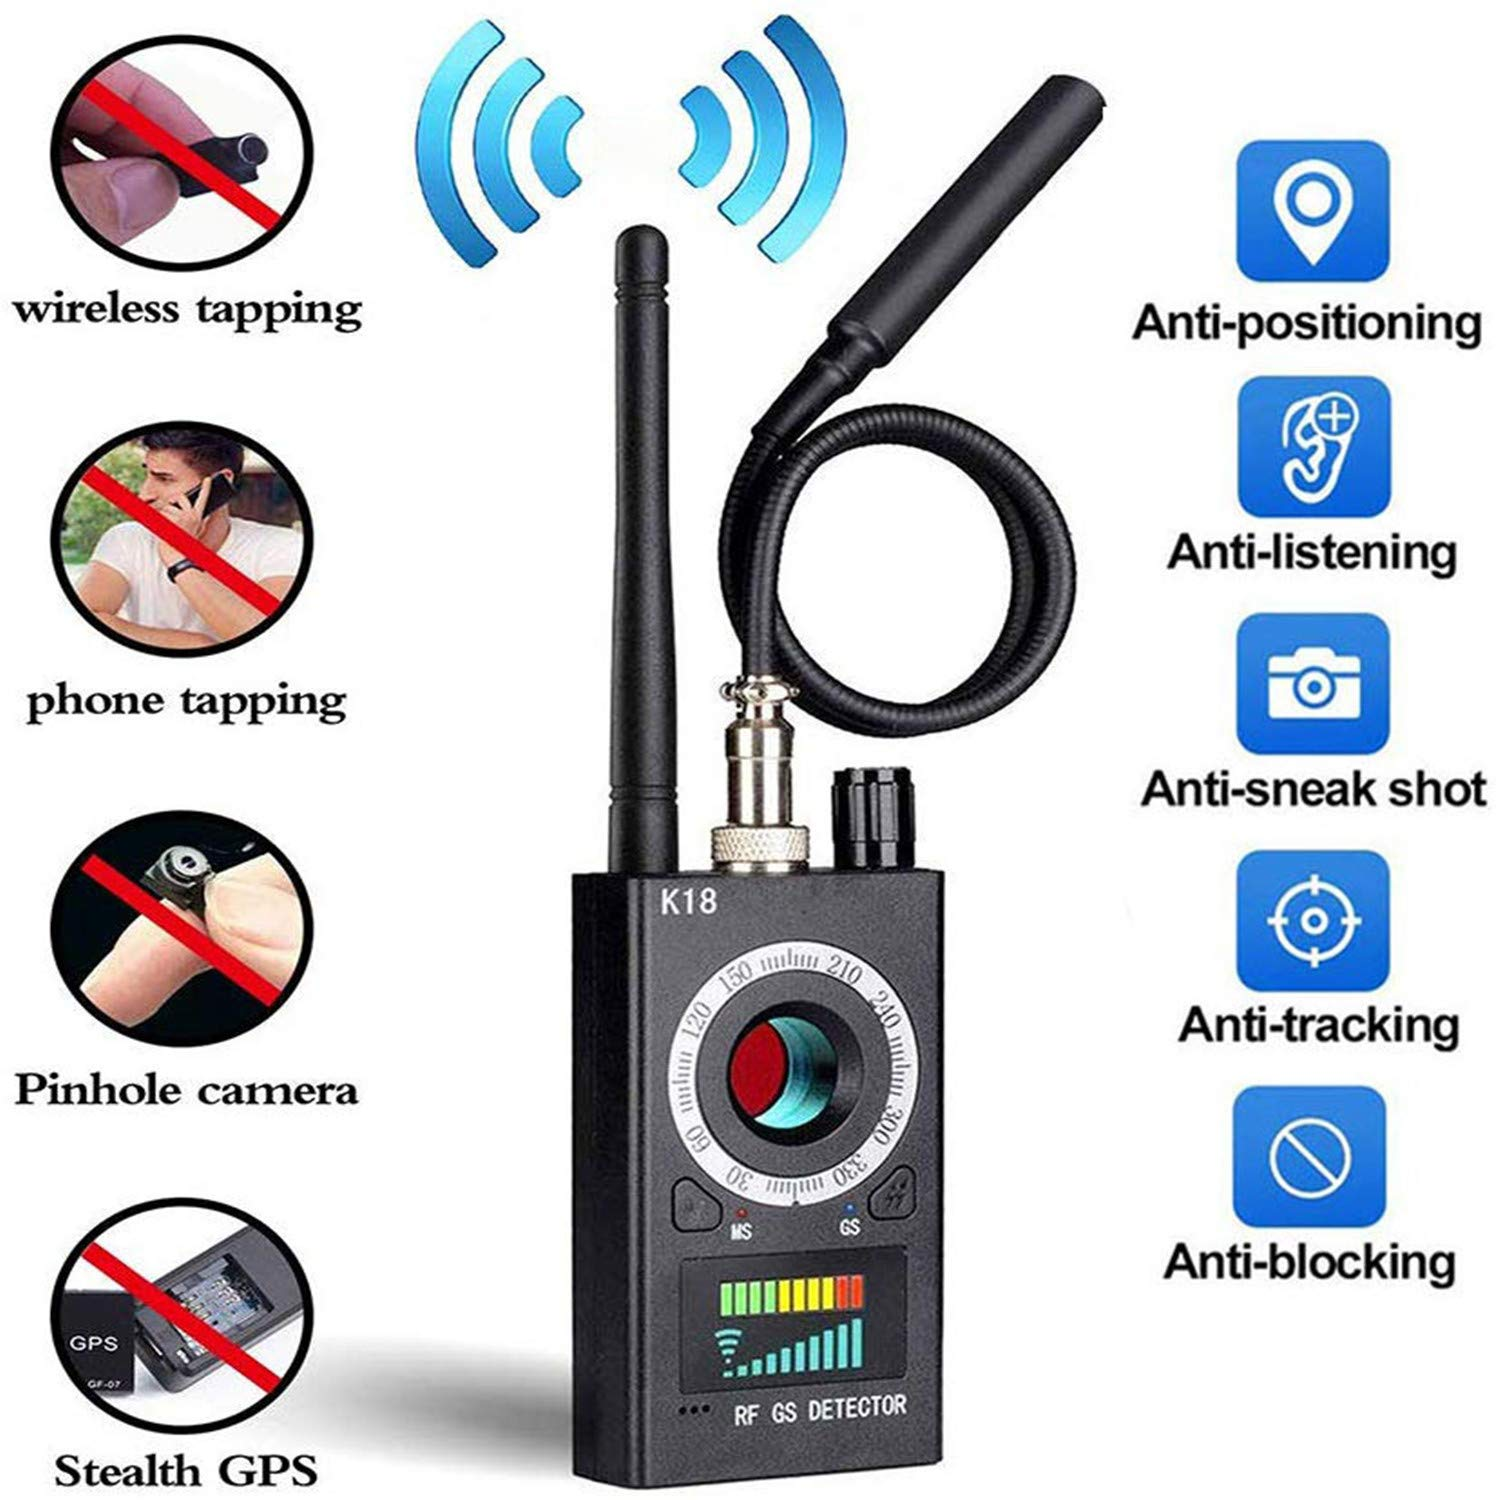 Anti Spy Detector /& Camera Finder RF Signal Detector GPS Bug Detector Hidden Camera Detector for GSM Tracking Device GPS Radar Radio Frequency DetectorKardia Mobile ECG for Apple /& Android Devices